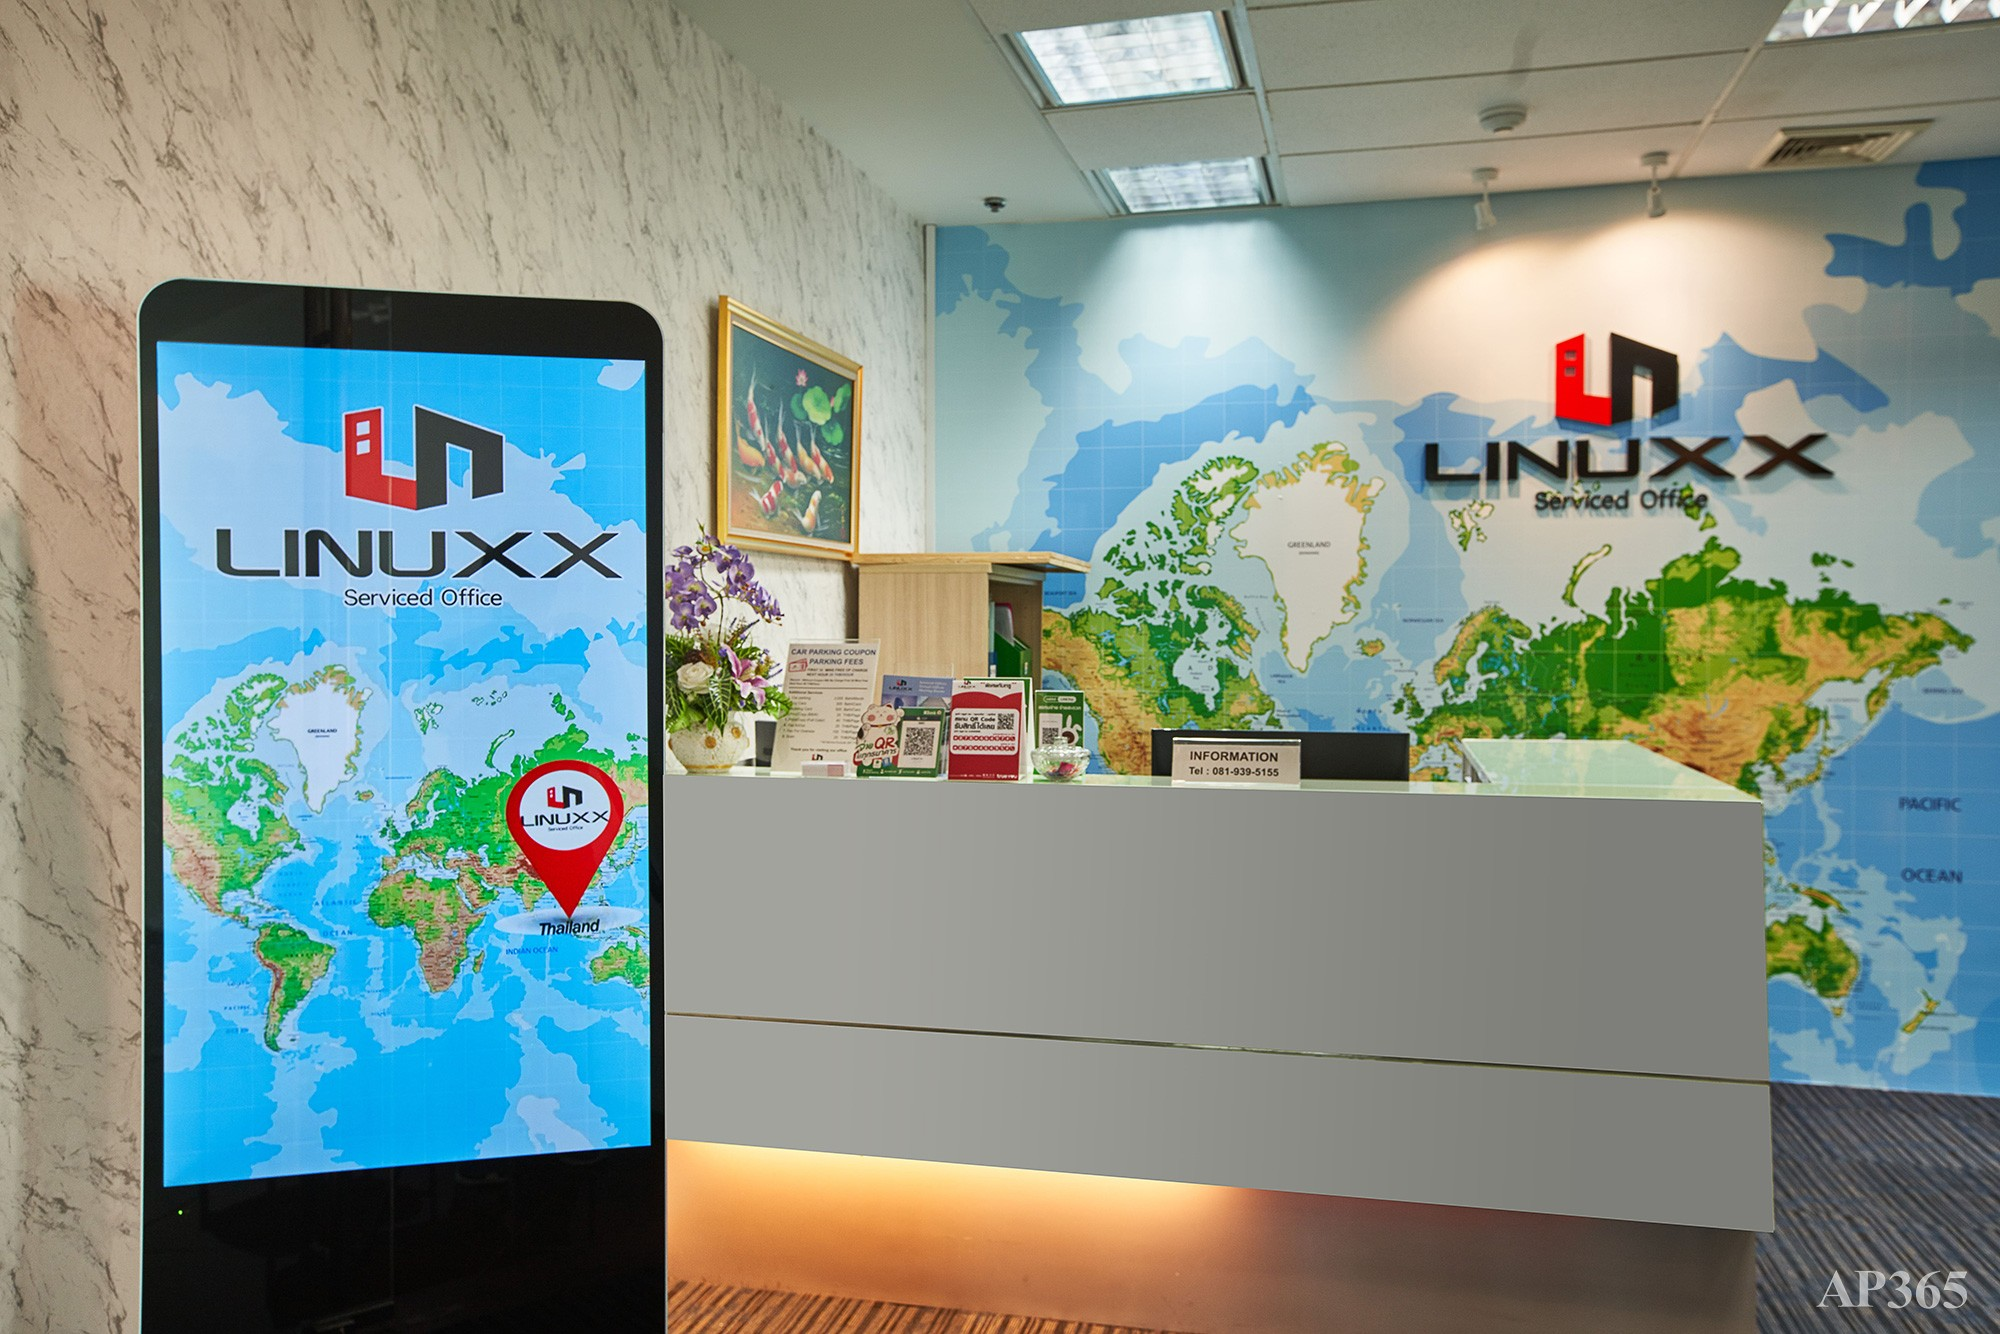 Linuxx Serviced Office - Asia Centre Building 17th Fl. (Room 103) - 2